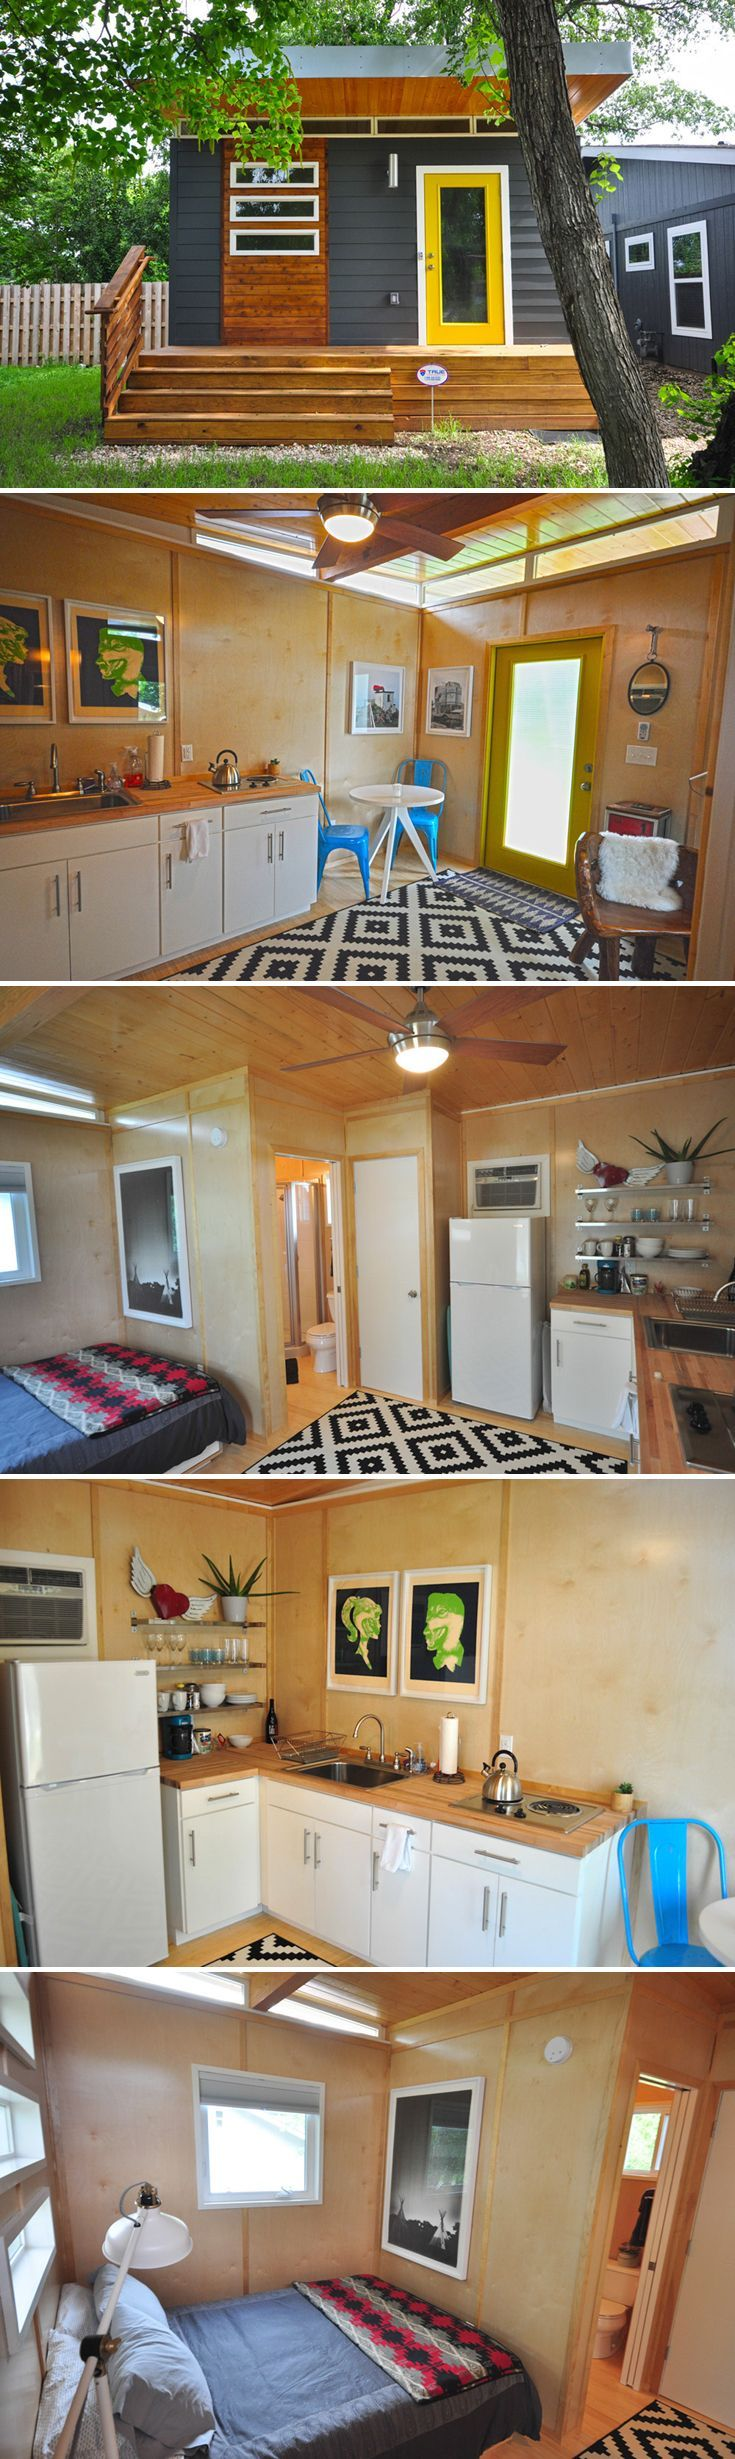 Shipping container homes living for the future earth911 com - The 25 Best Tiny Texas Houses Ideas On Pinterest Small Cabins Loft Flooring And Houses In Texas